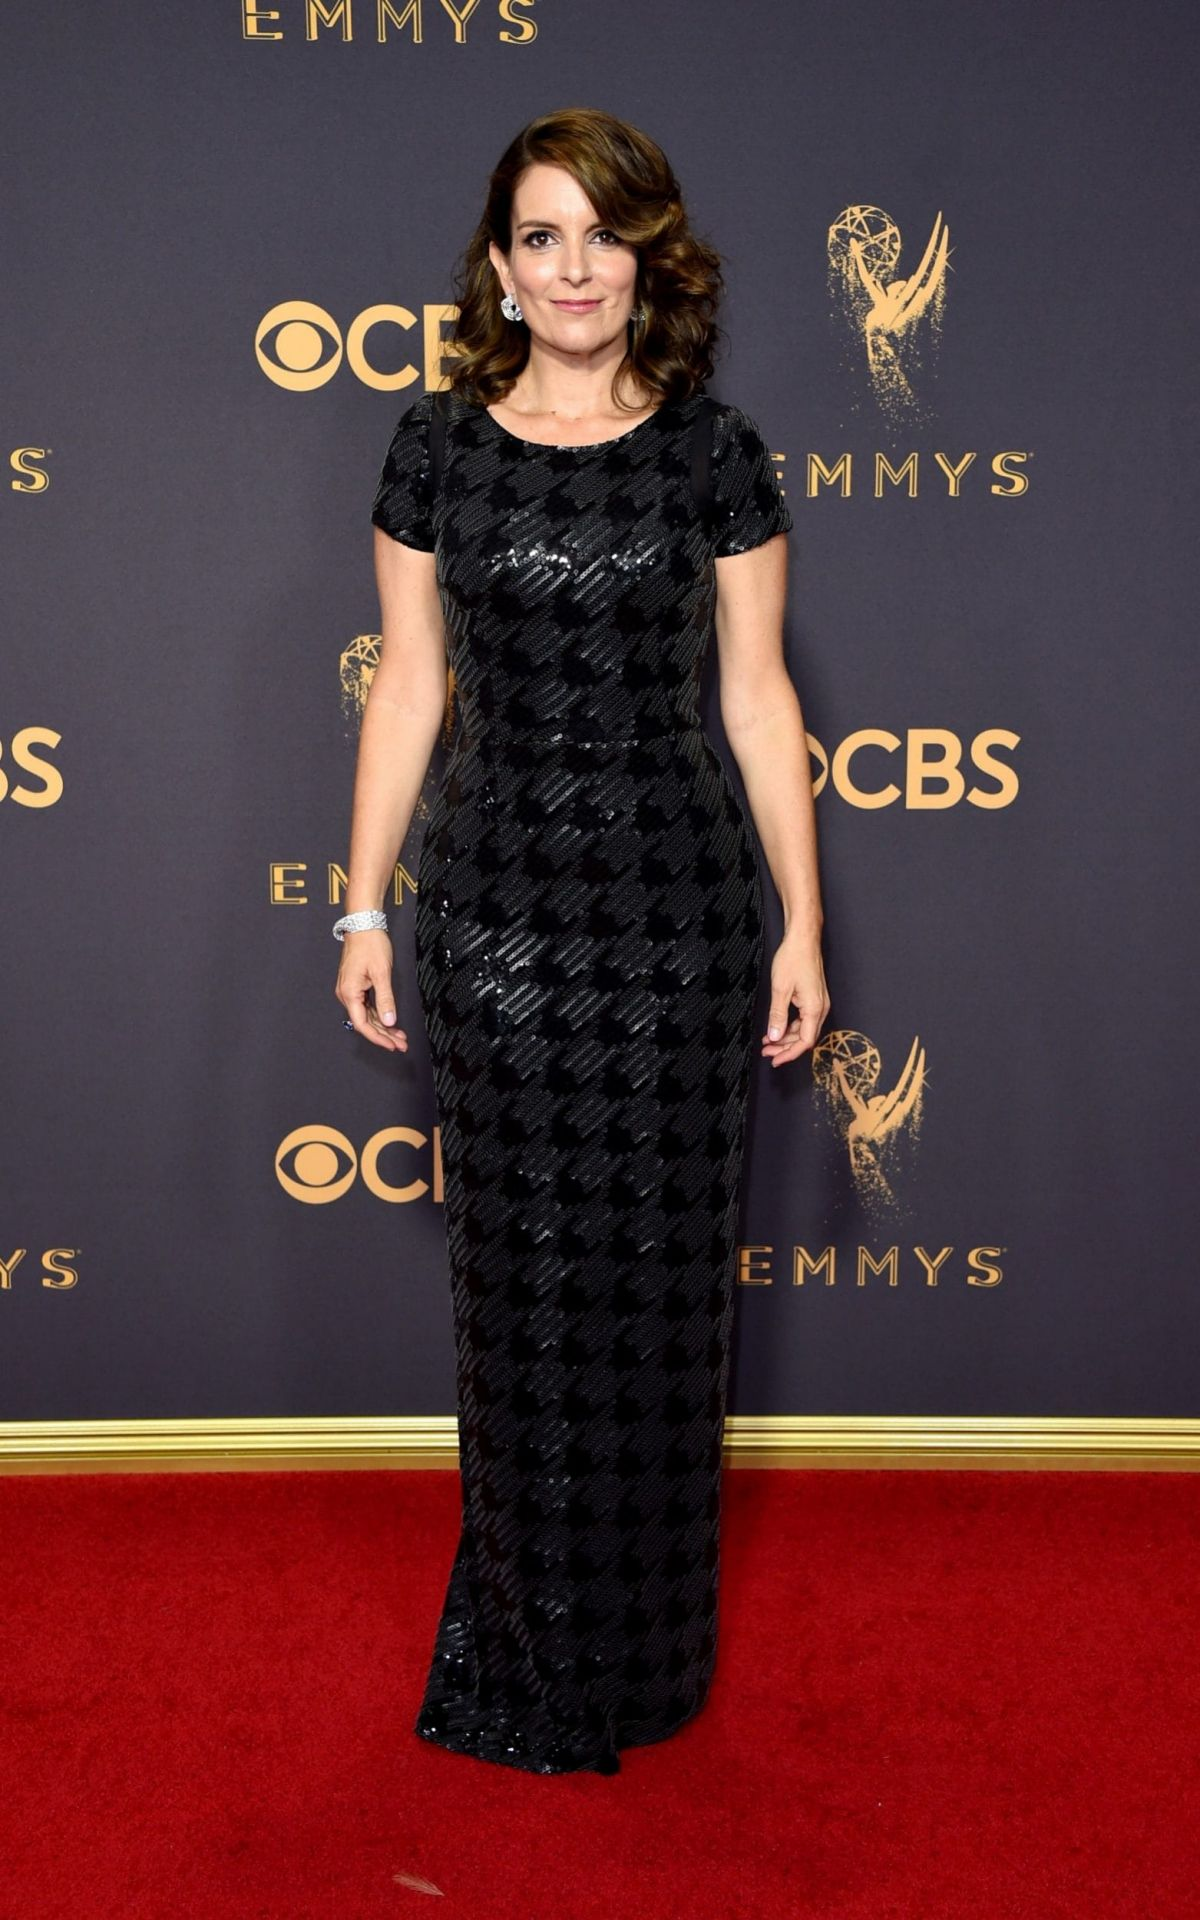 TINA FEY at 69th Annual Primetime EMMY Awards in Los Angeles 09/17/2017